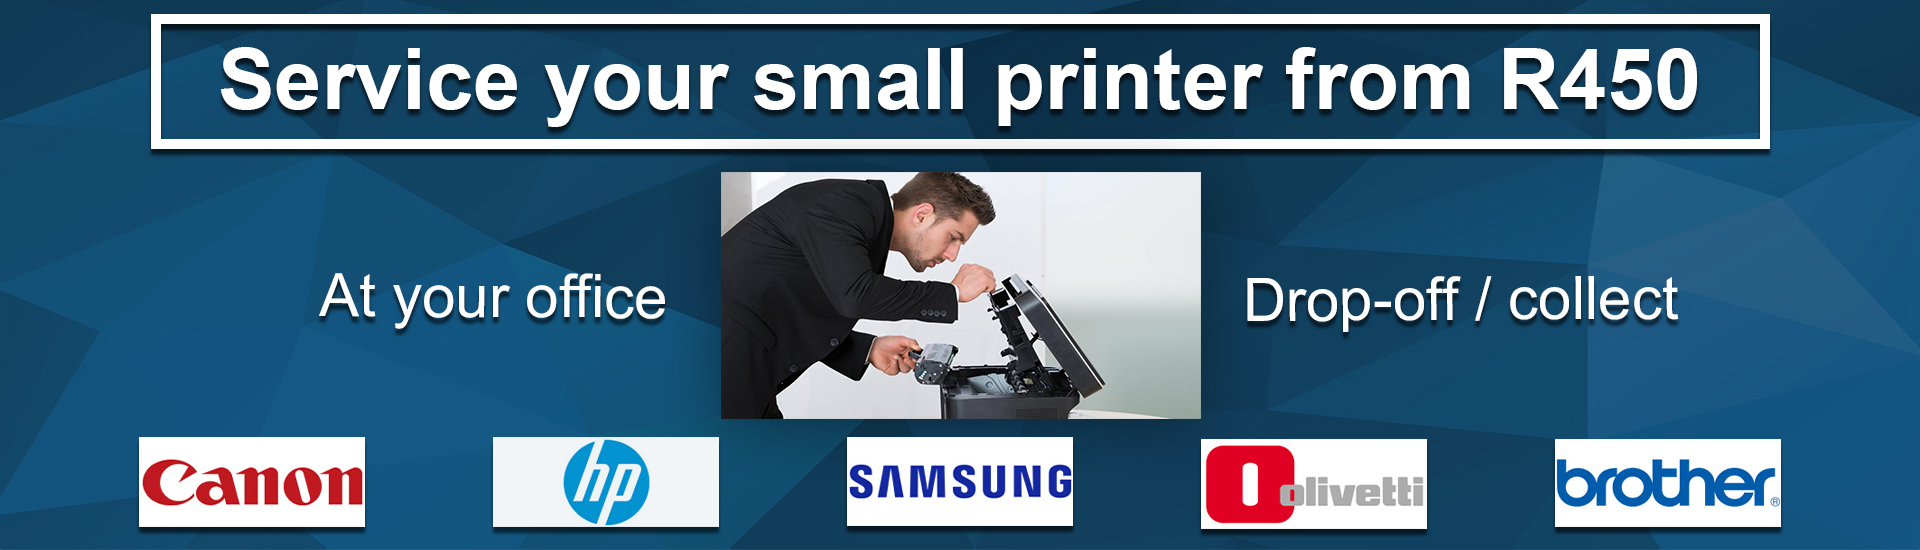 Service_your_small_printer_3.jpg